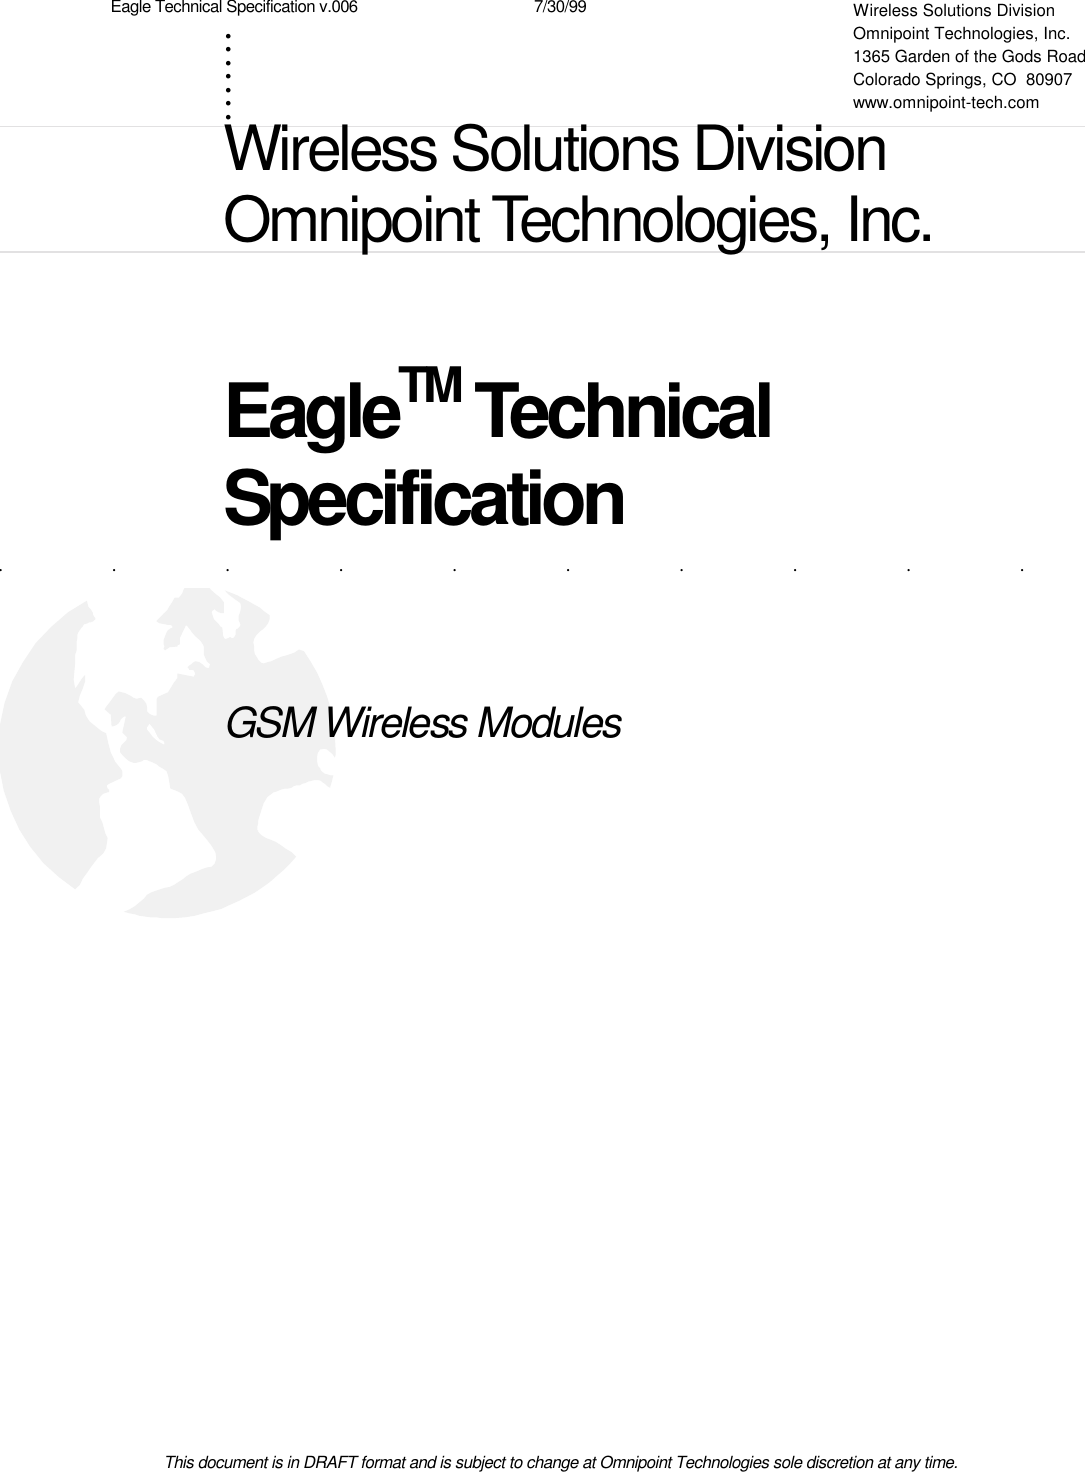 Omnipoint Technologies Orporated Rm1900 1 Gsm Pcs1900 Radio Module Schematic Available In Pdf And Eagle Formats The Technical Specification V006 7 30 99this Document Is Draft Format